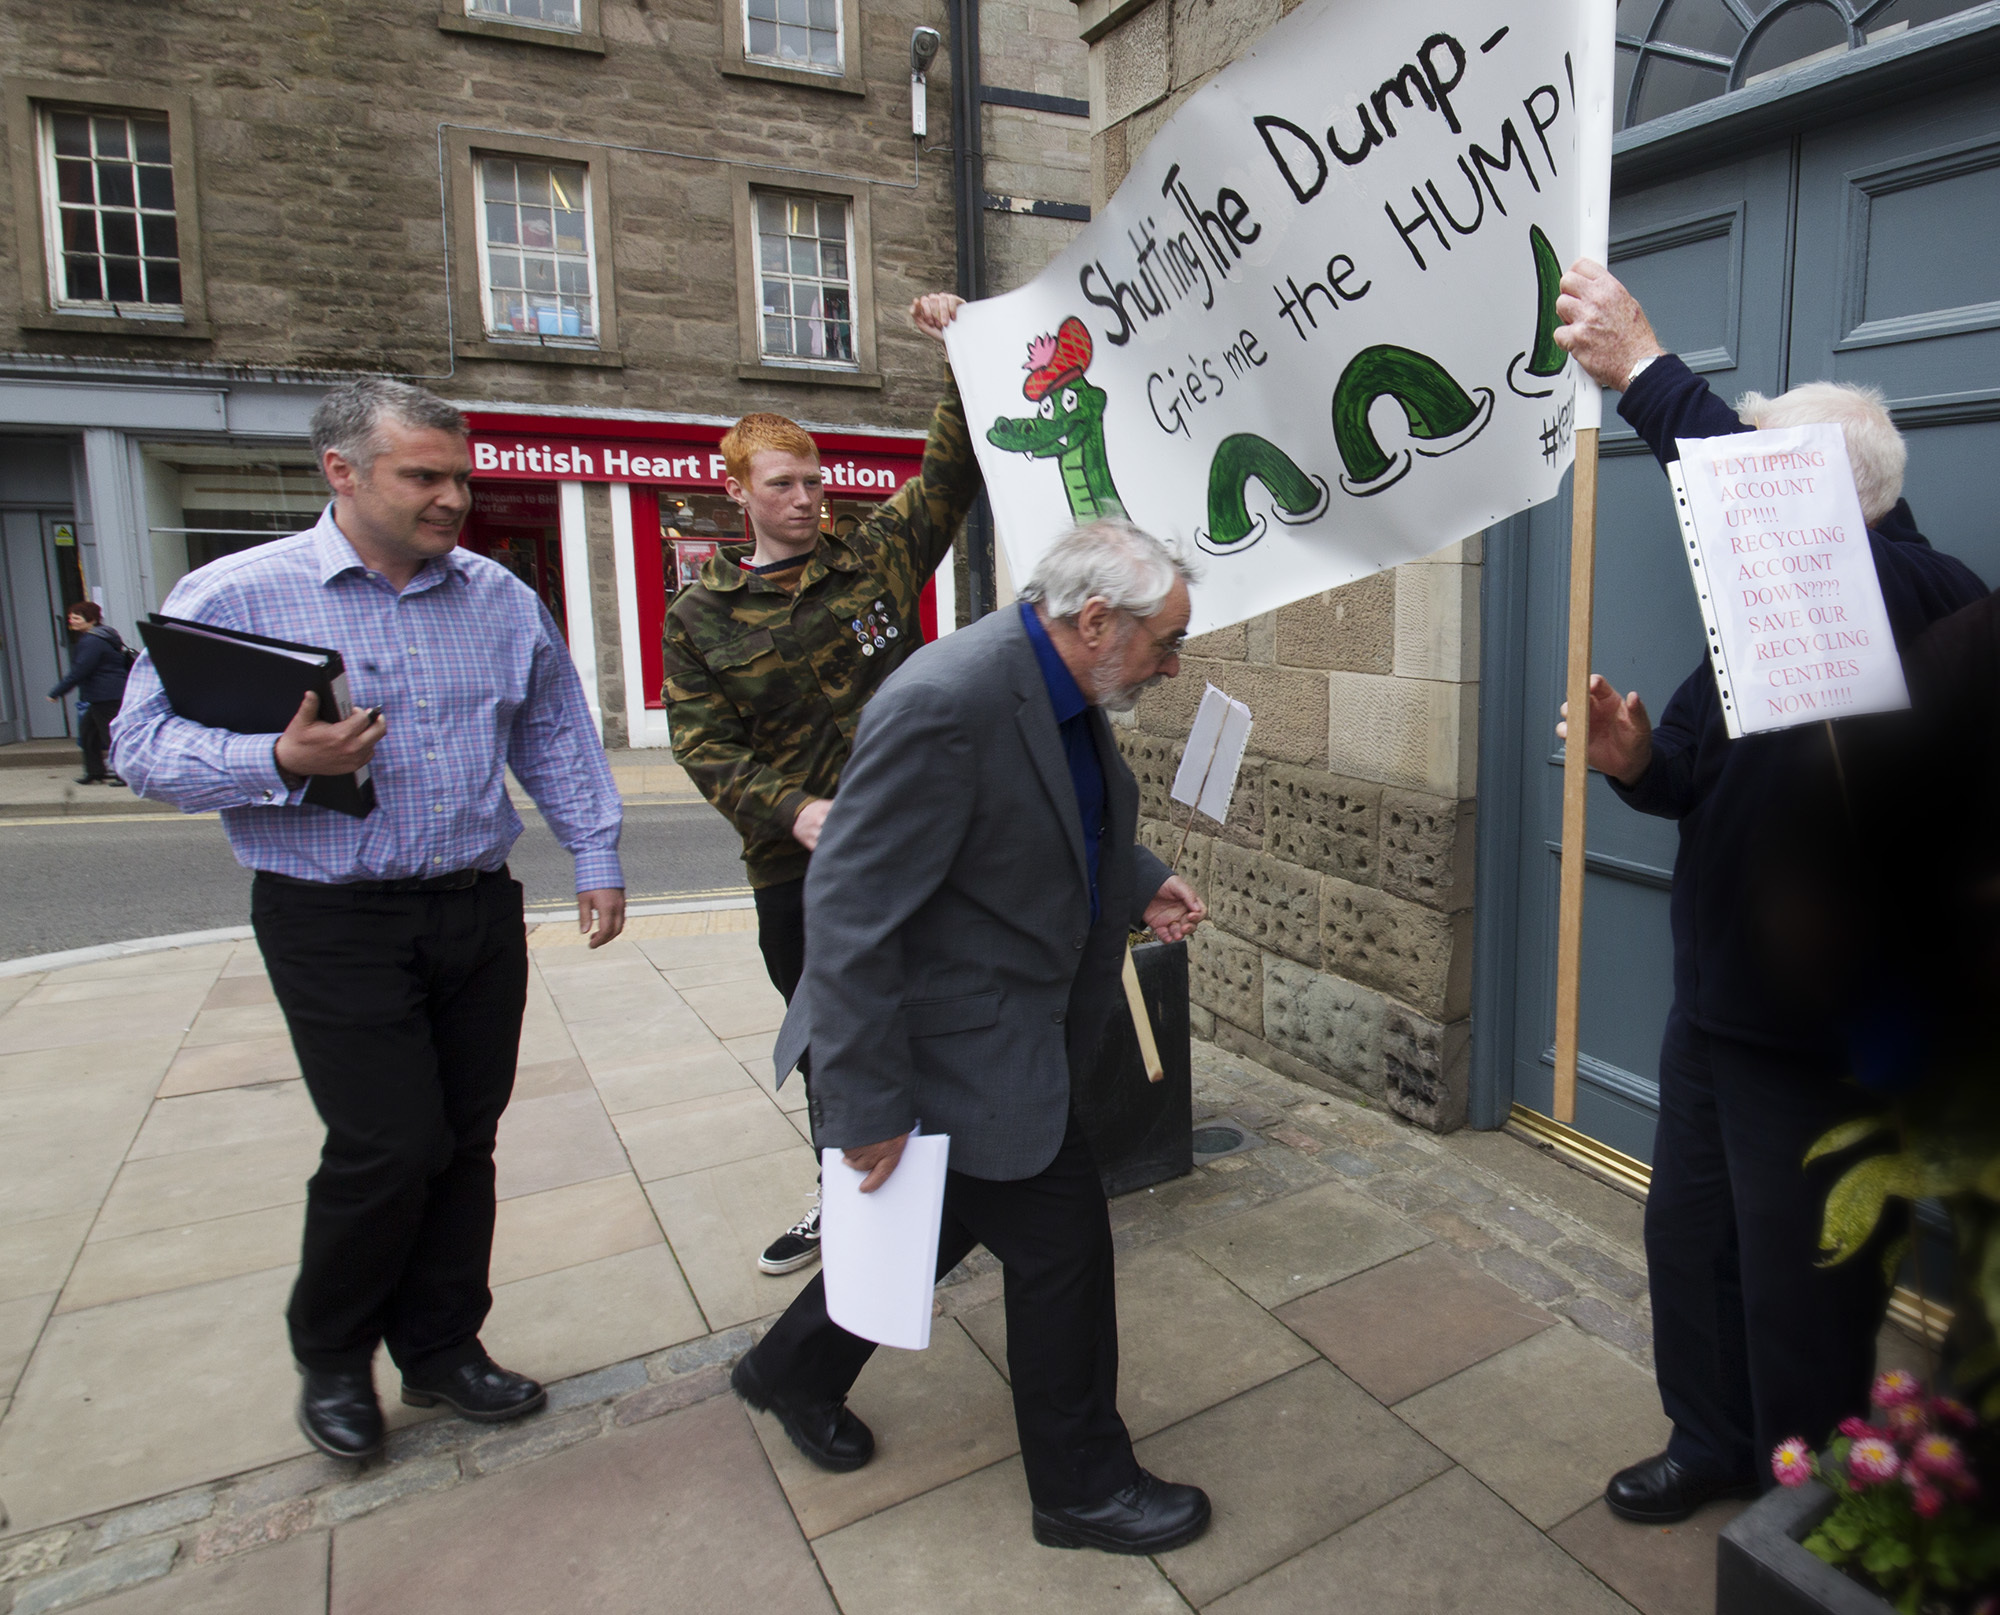 Protests took place at Town and County Hall over the planned recycling cuts.